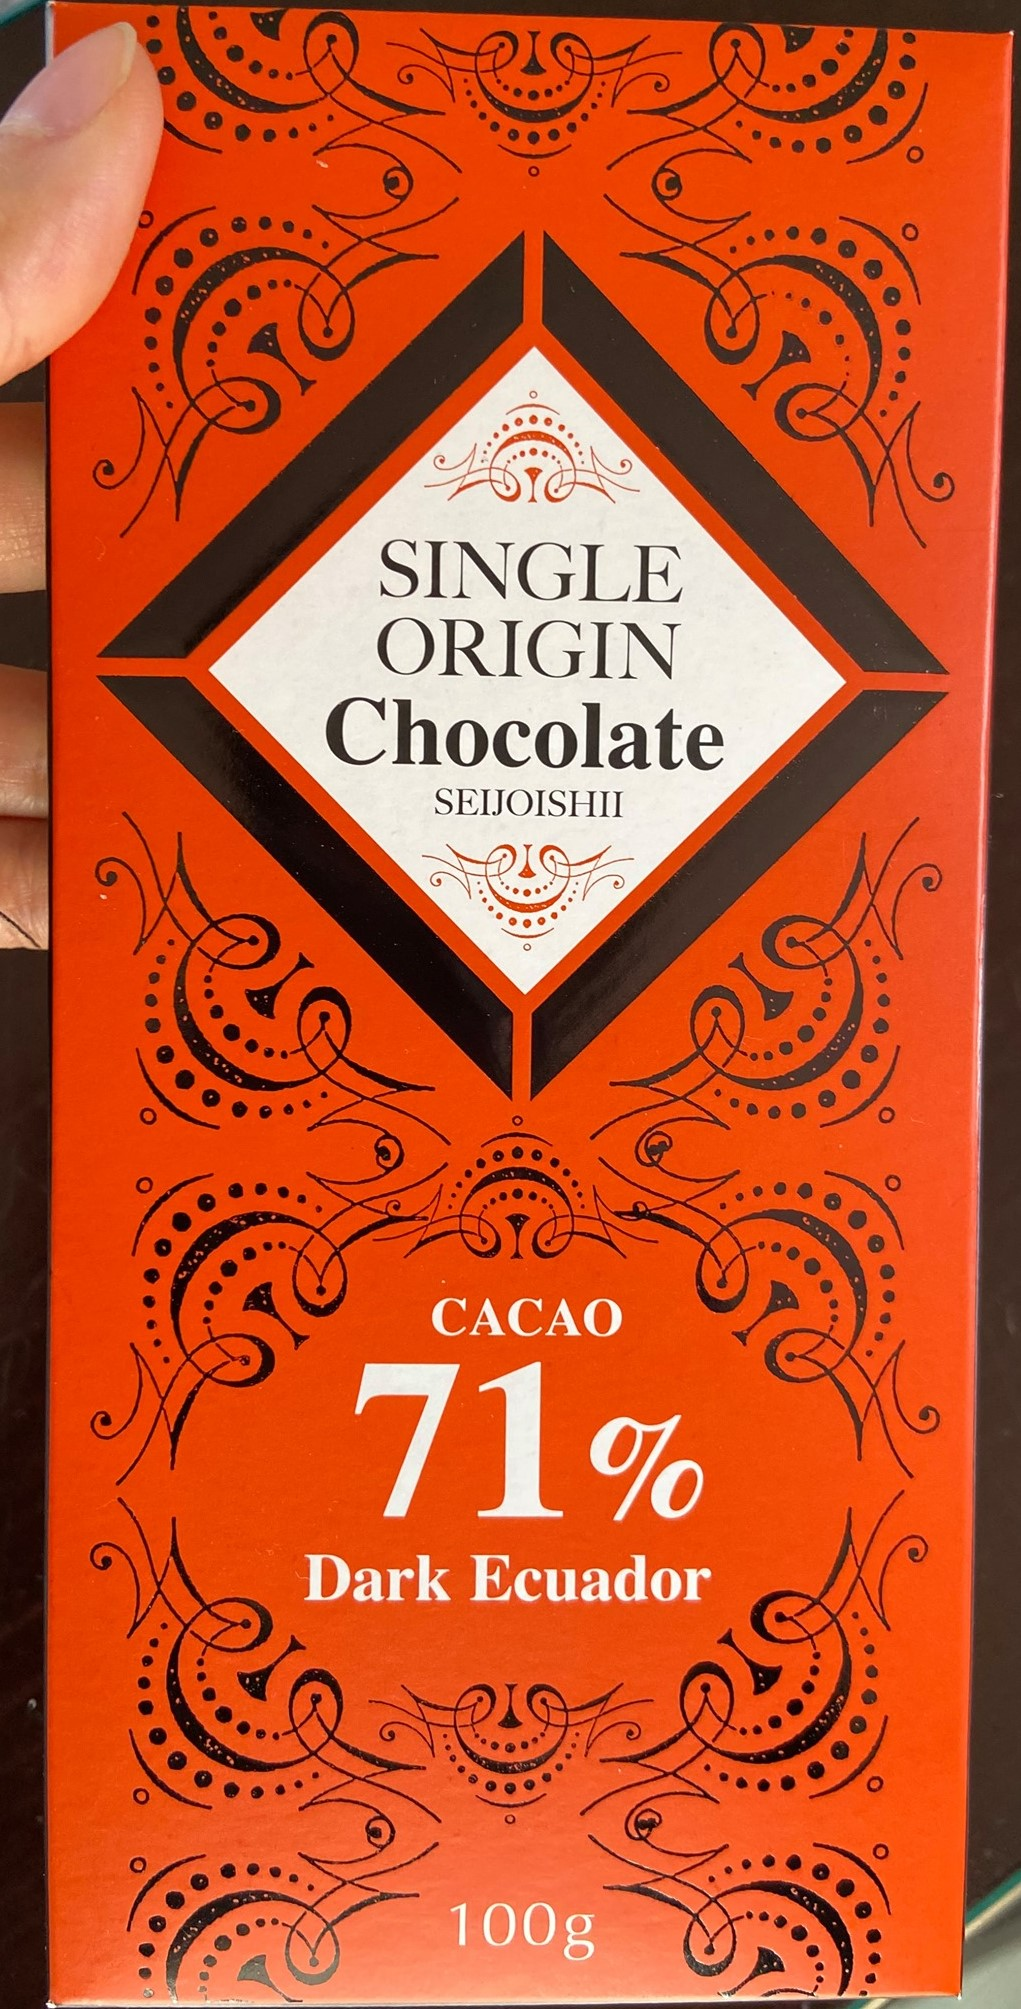 Seijo Ishii single origin chocolate